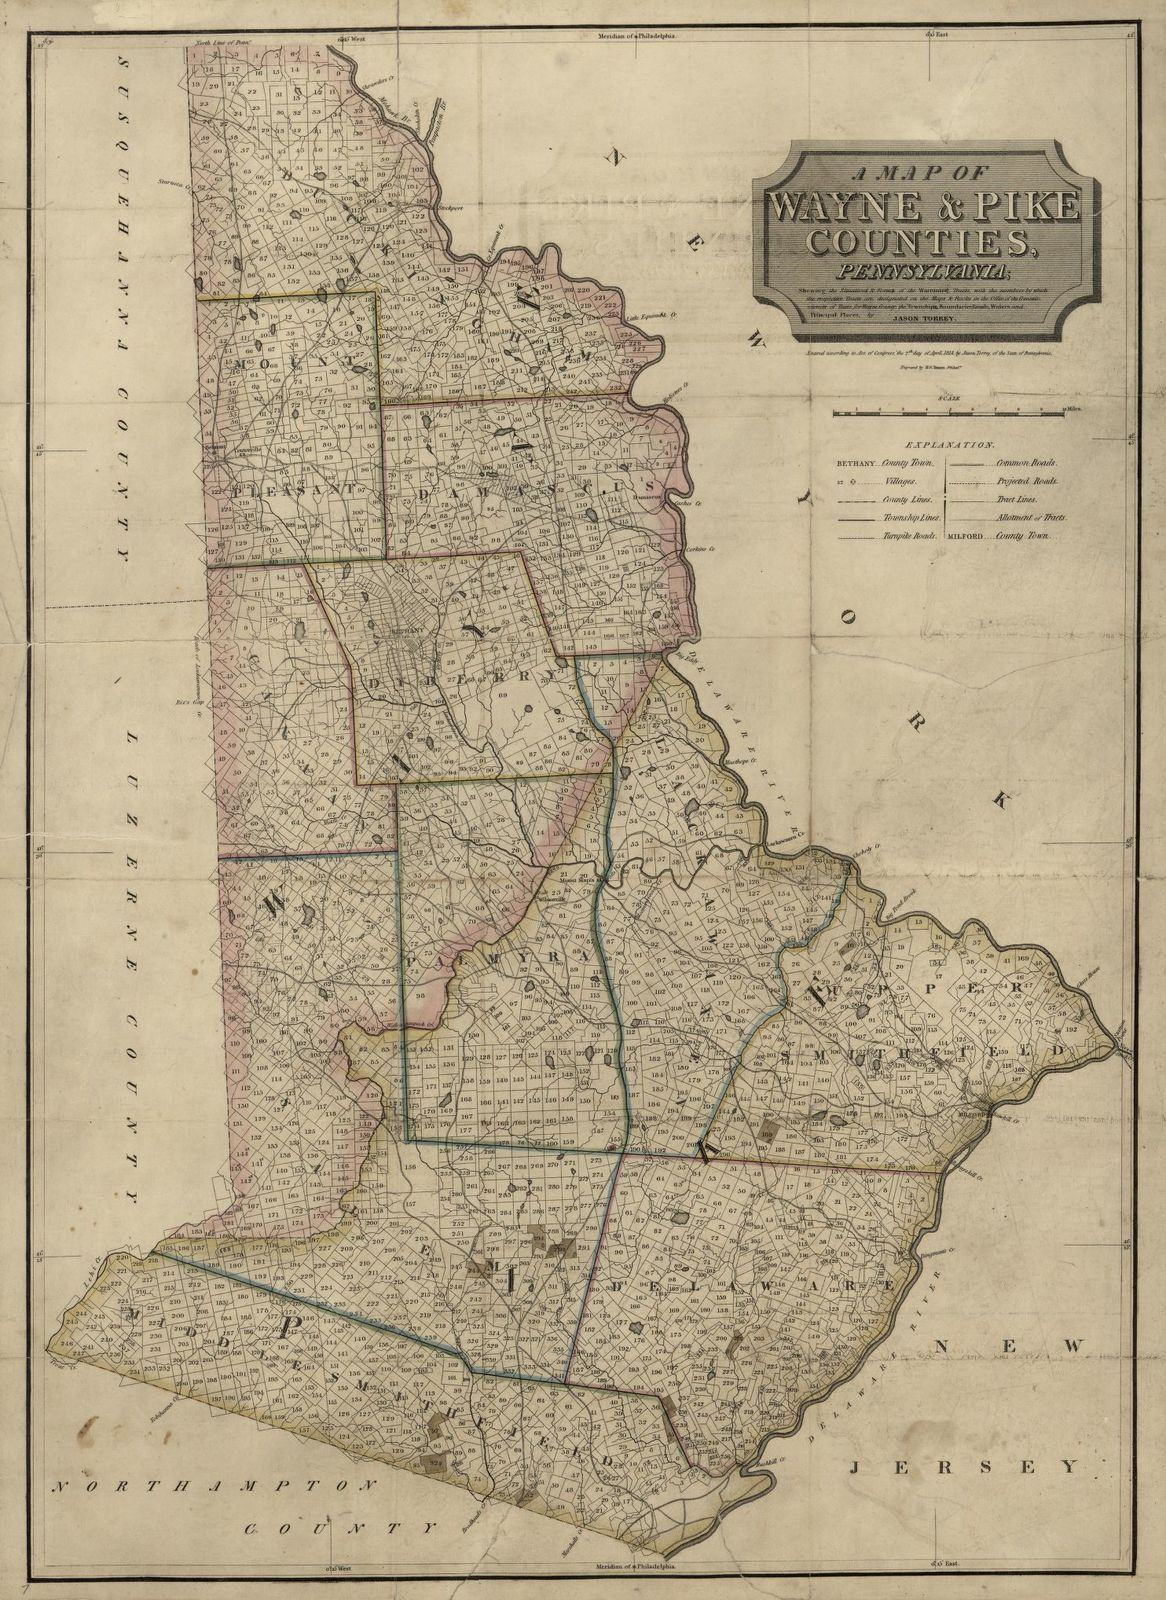 A map of Wayne & Pike counties, Pennsylvania  : shewing the situations & forms of the warrantee tracts, with the numbers by which the respective tracts are distinguished in the maps & books in the Office of the Commissioners of places for Wayne County, the townships, boundaries, roads, waters and principal places /